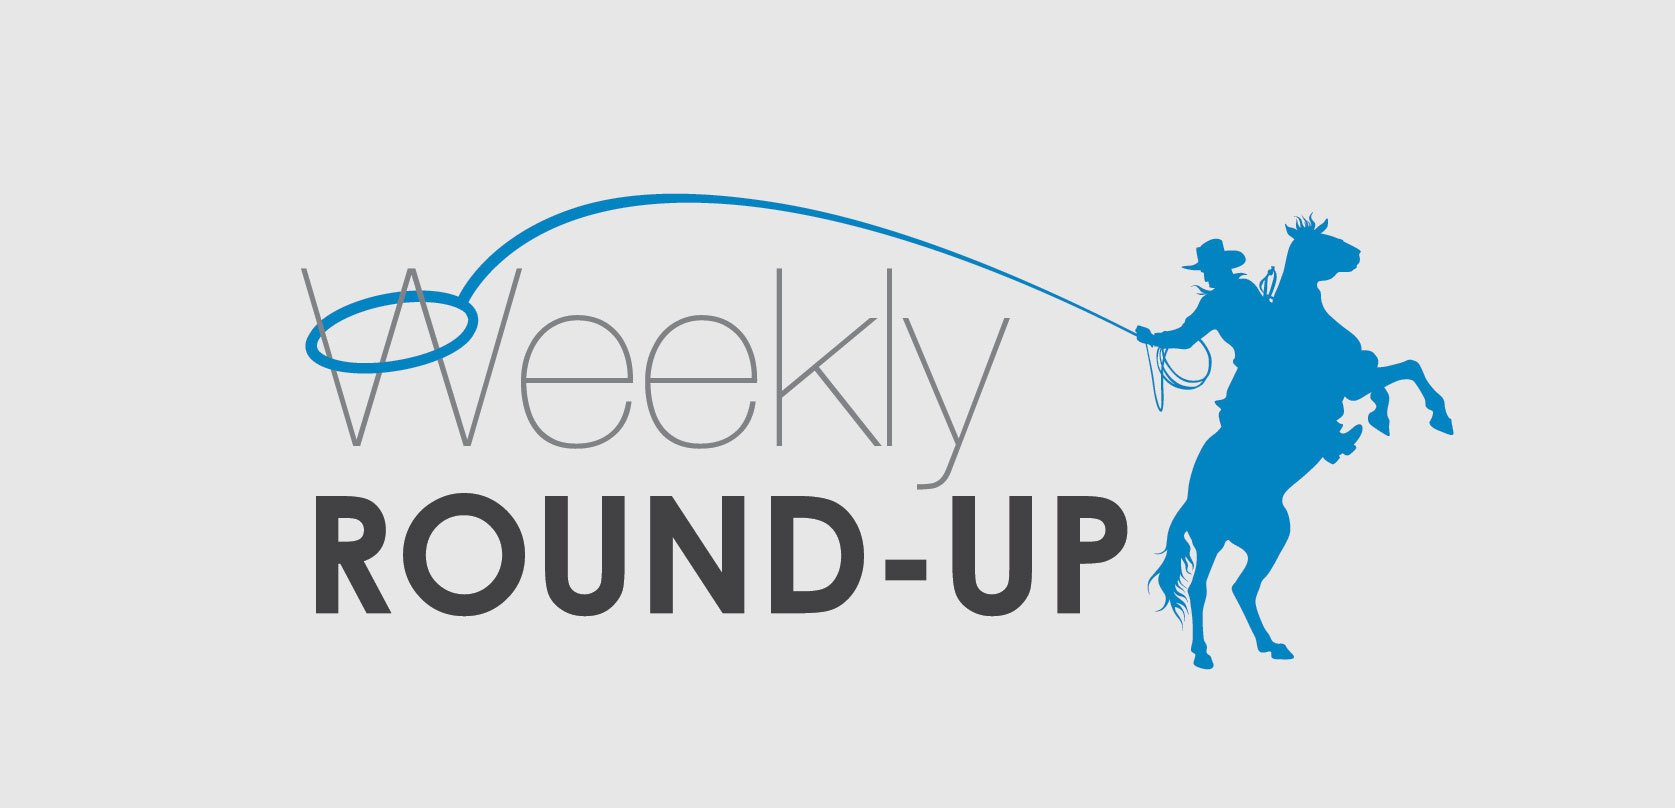 weekly round-up, best of blogs, best leadership blogs, employee communication, top blog posts, best blogs of the week